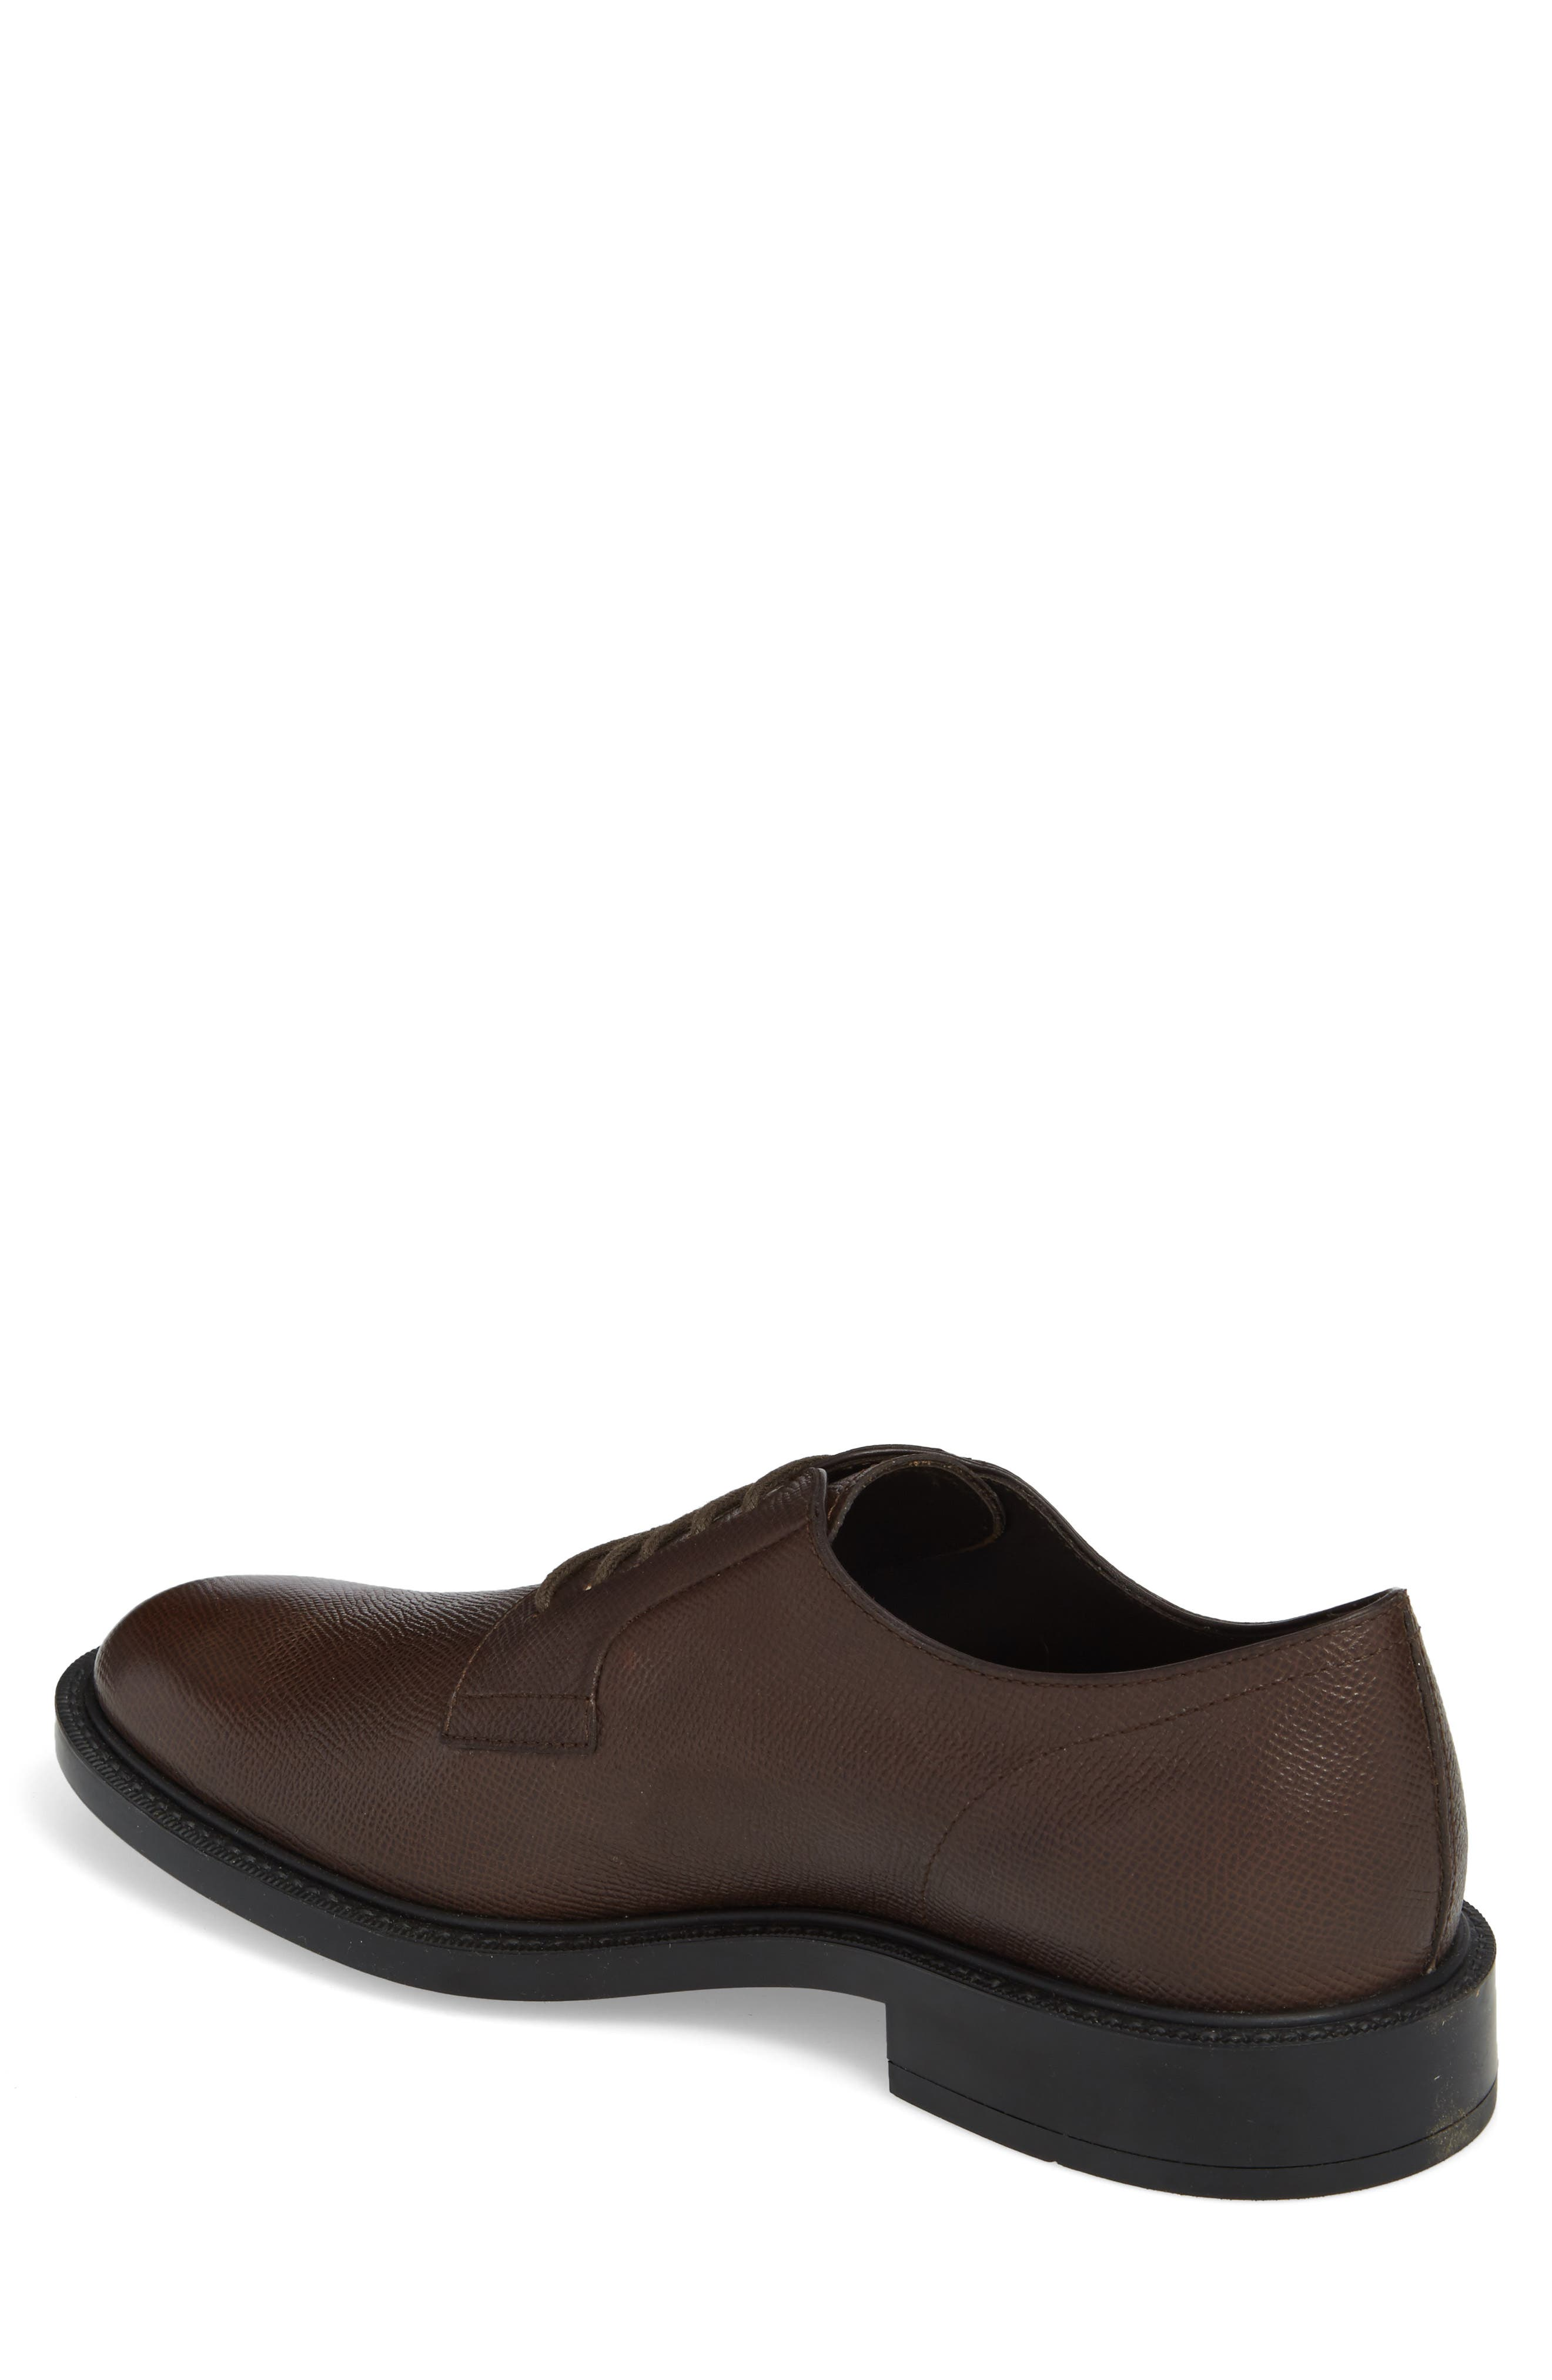 Clean Plain Toe Derby,                             Alternate thumbnail 2, color,                             Brown Textured Leather